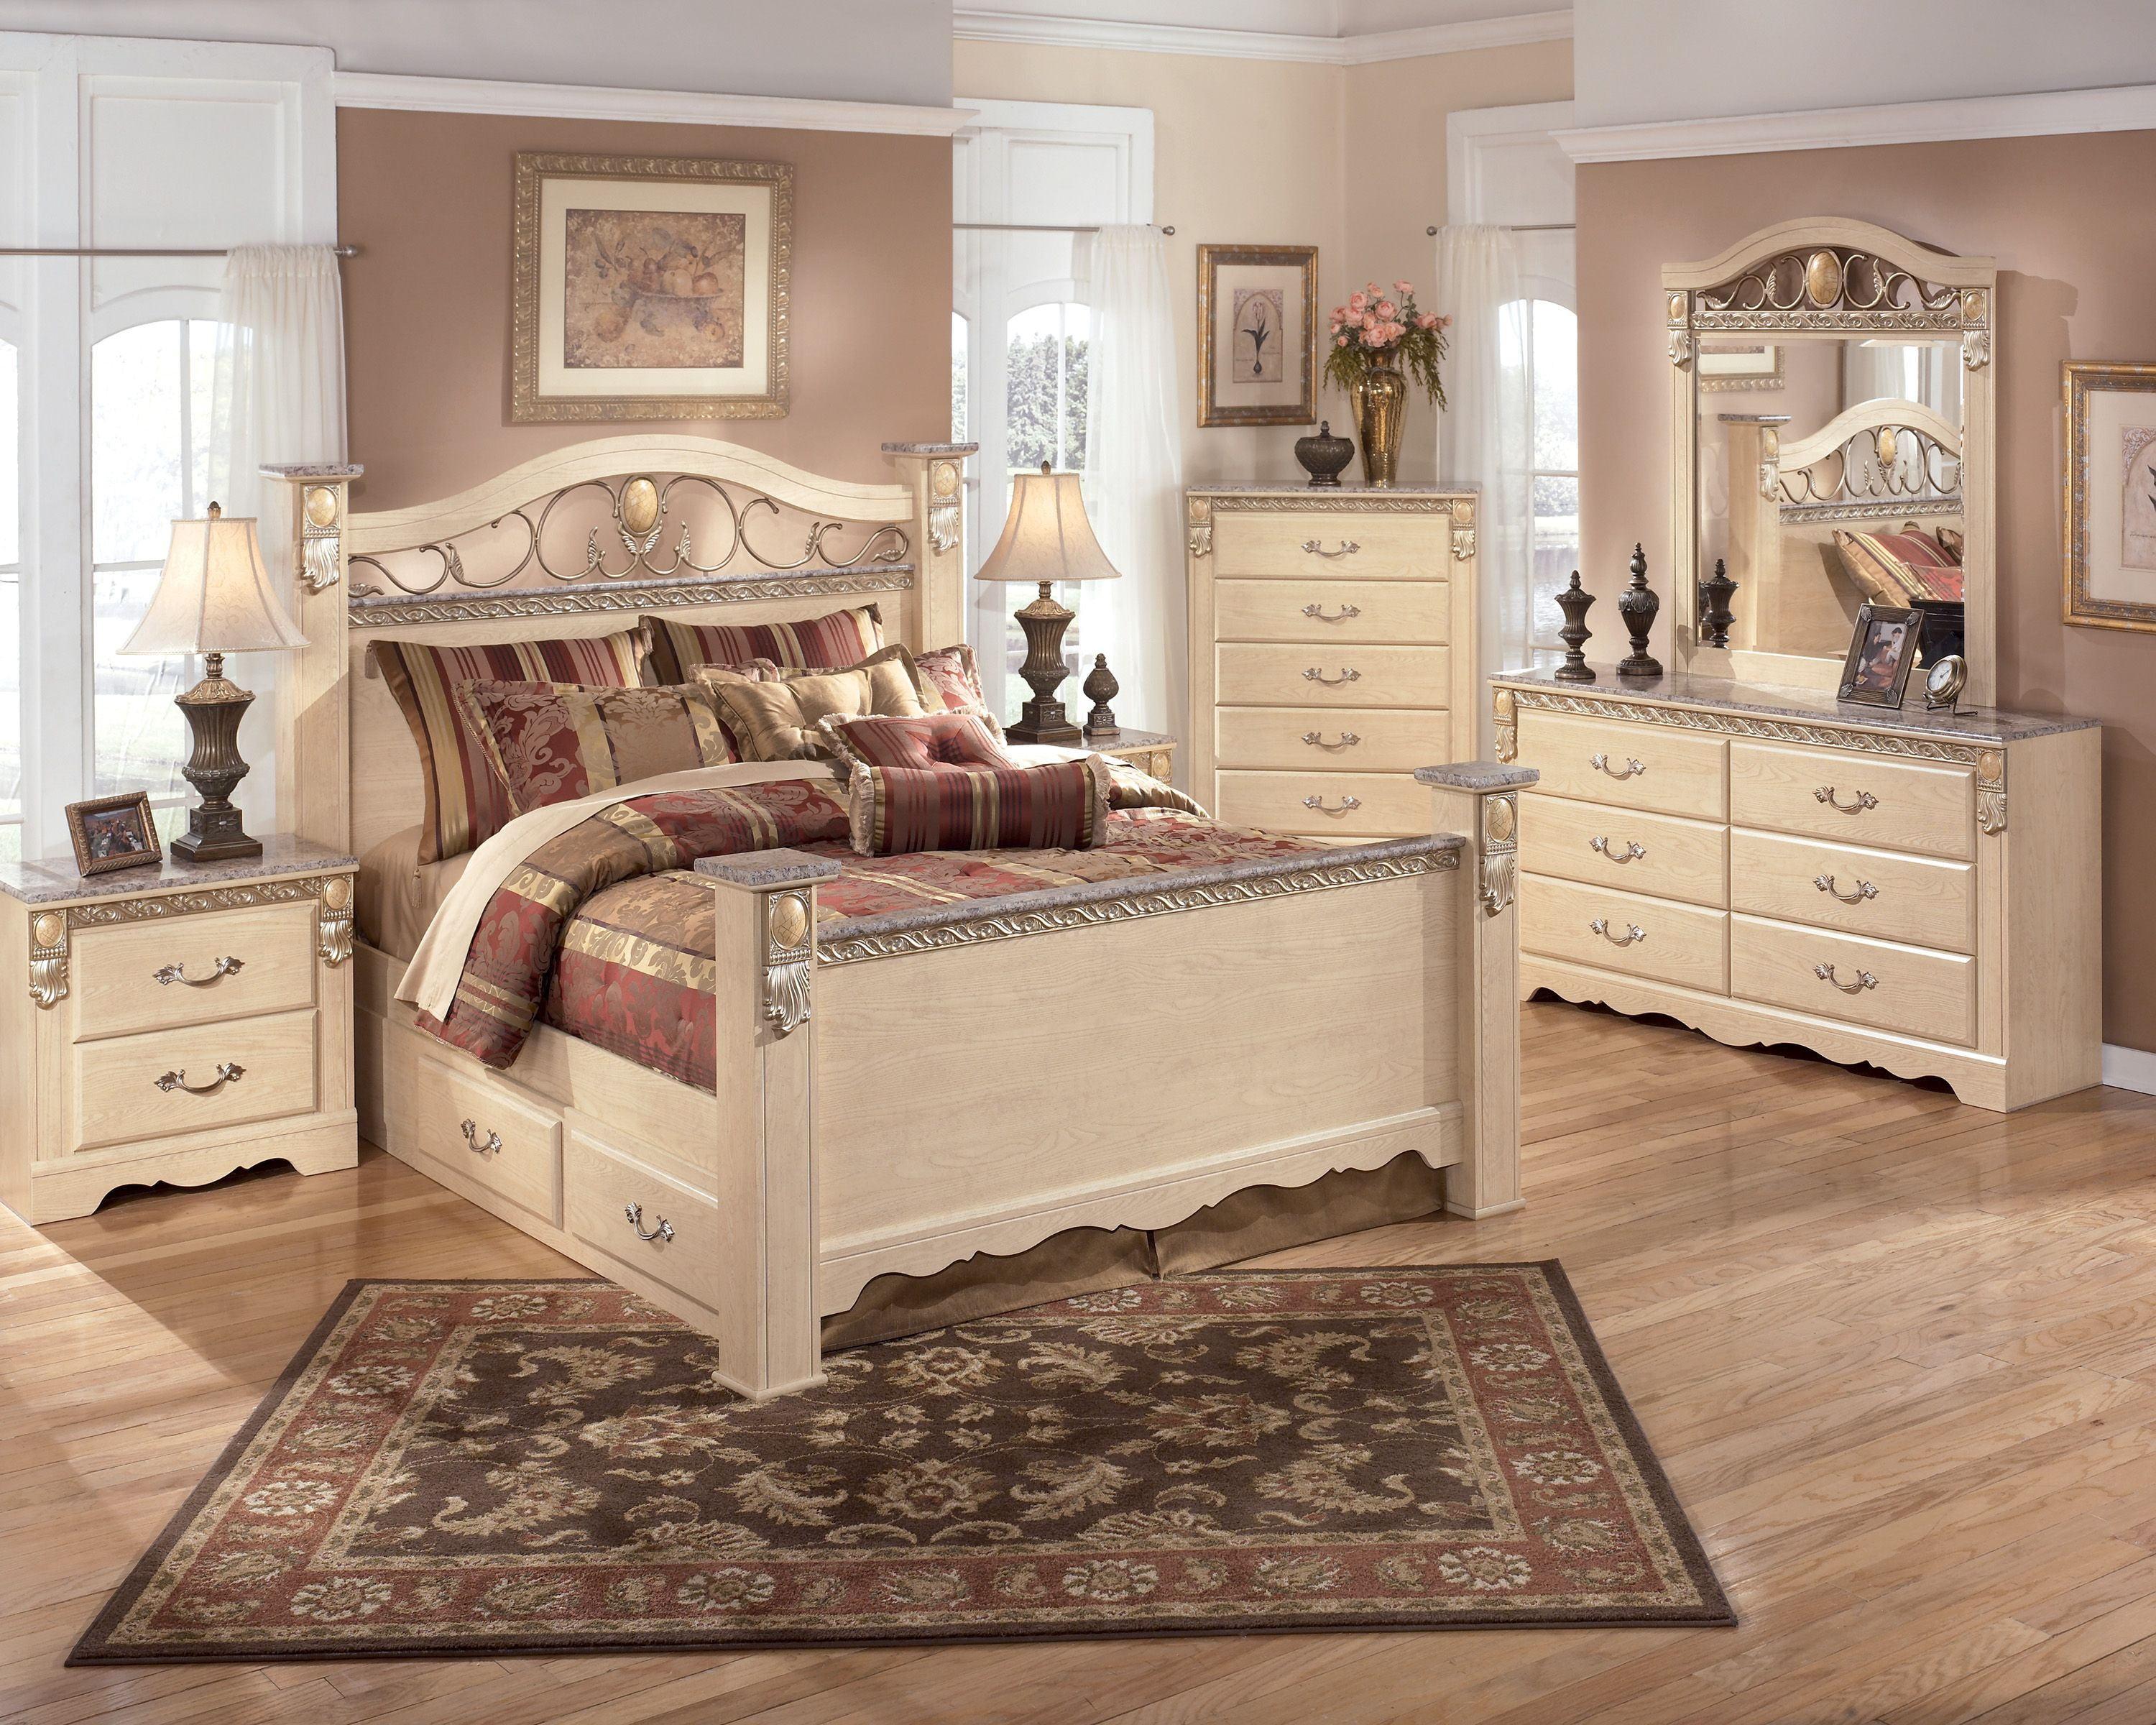 Sanibel Collection From National Furniture Liquidators 8600 Gateway